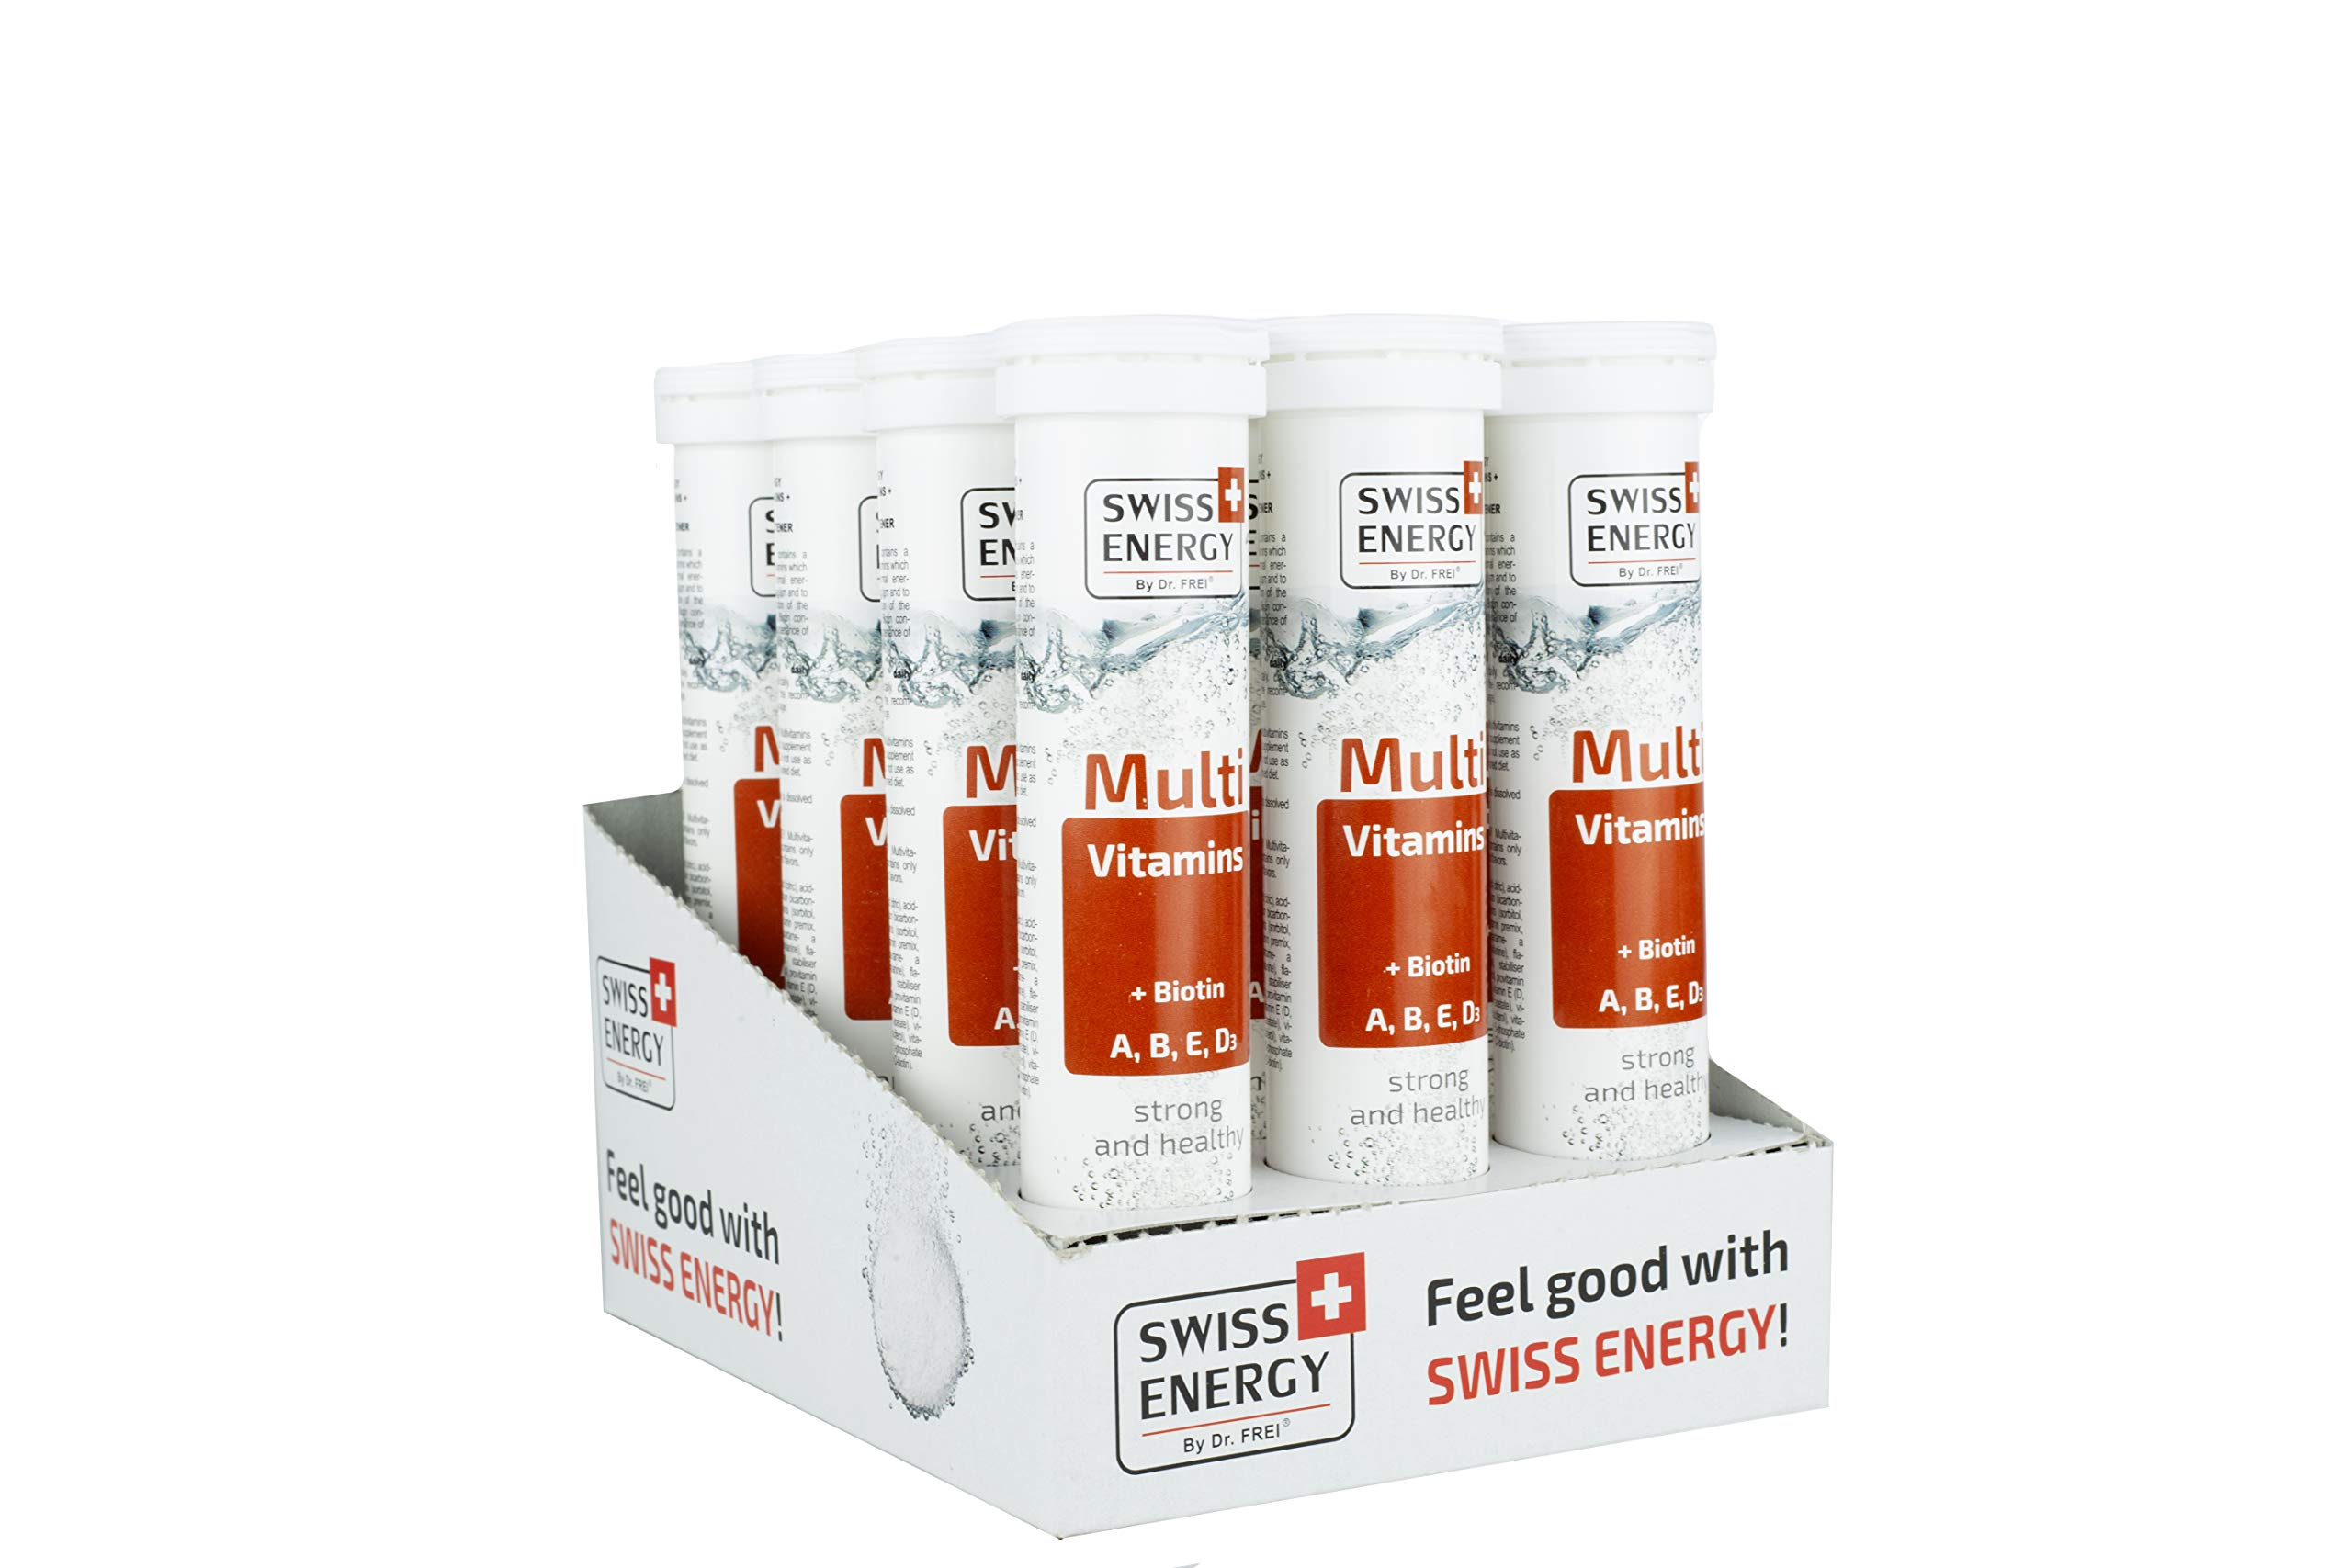 Swiss Energy Multi Vitamin (A, B, E, D3) + Biotin Effervescent (20 Count) - Pack of 12 by Swiss